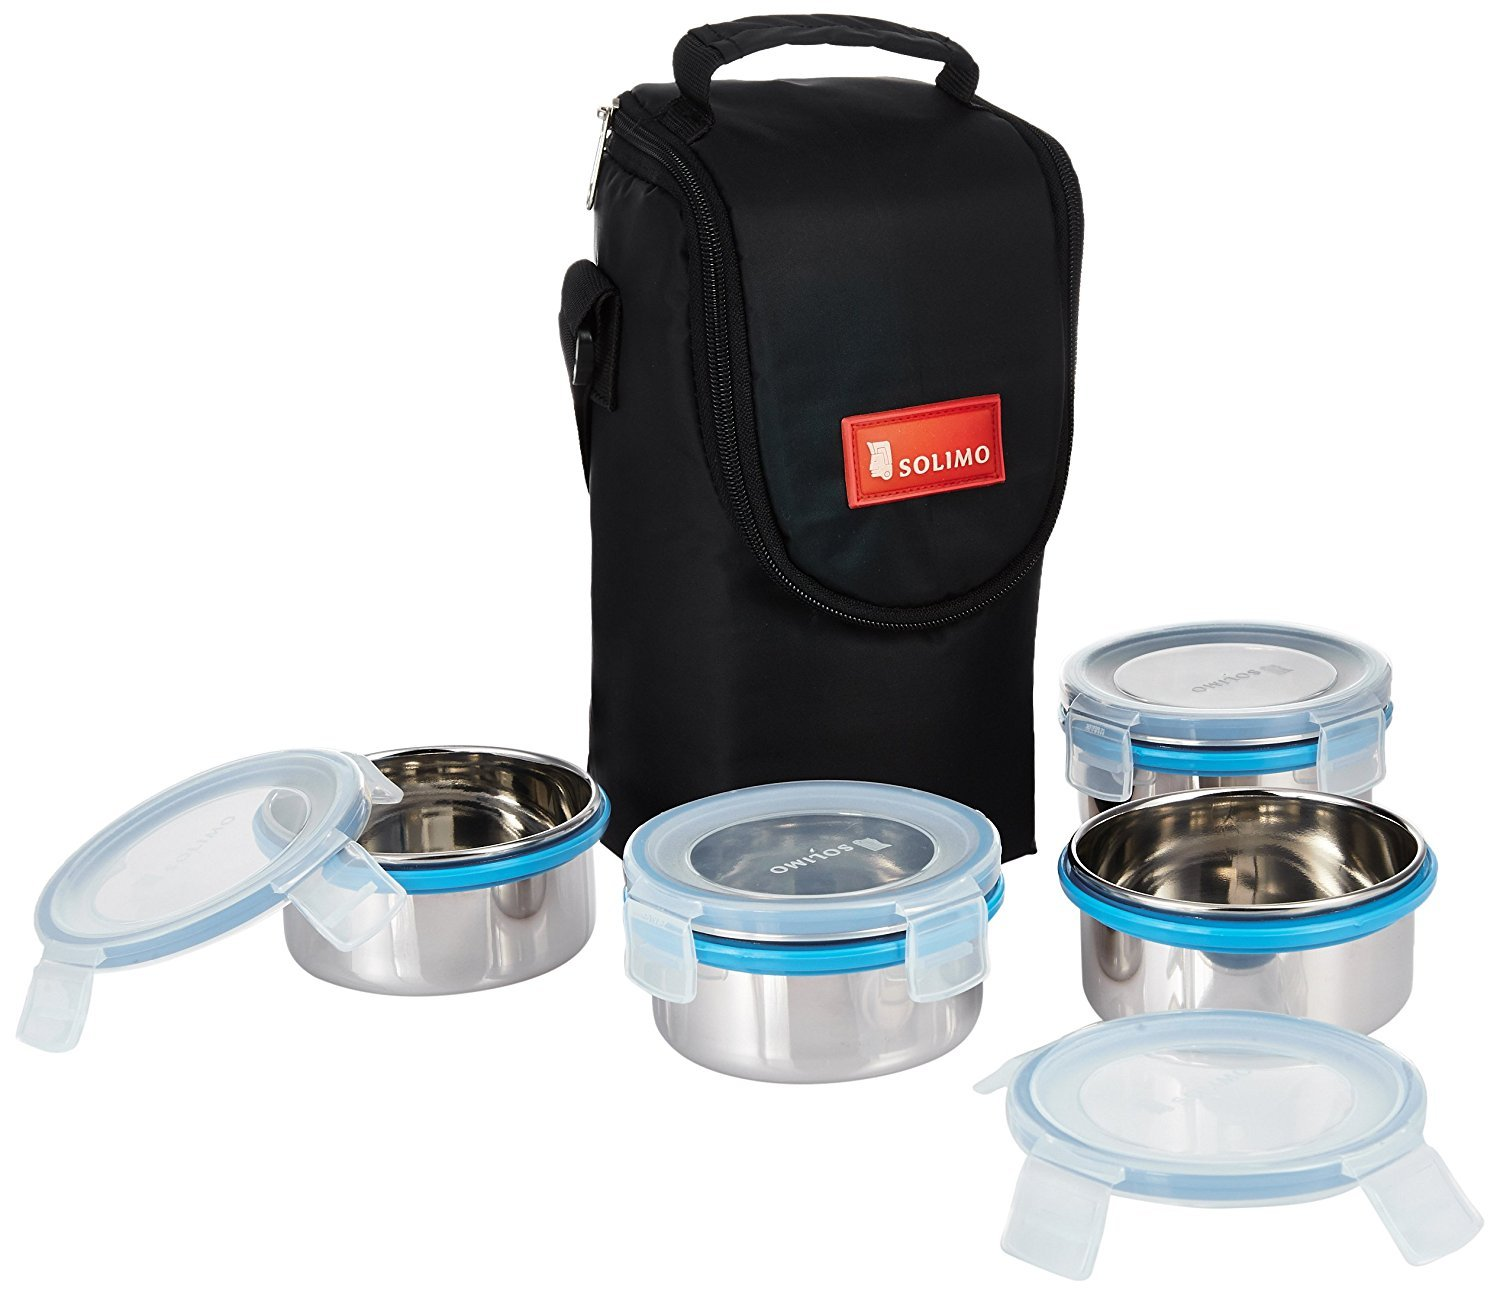 Solimo Stainless Steel Lunch Box Set with Bag, 300ml, 11cm Diameter, 4-Pieces, Clear Lid